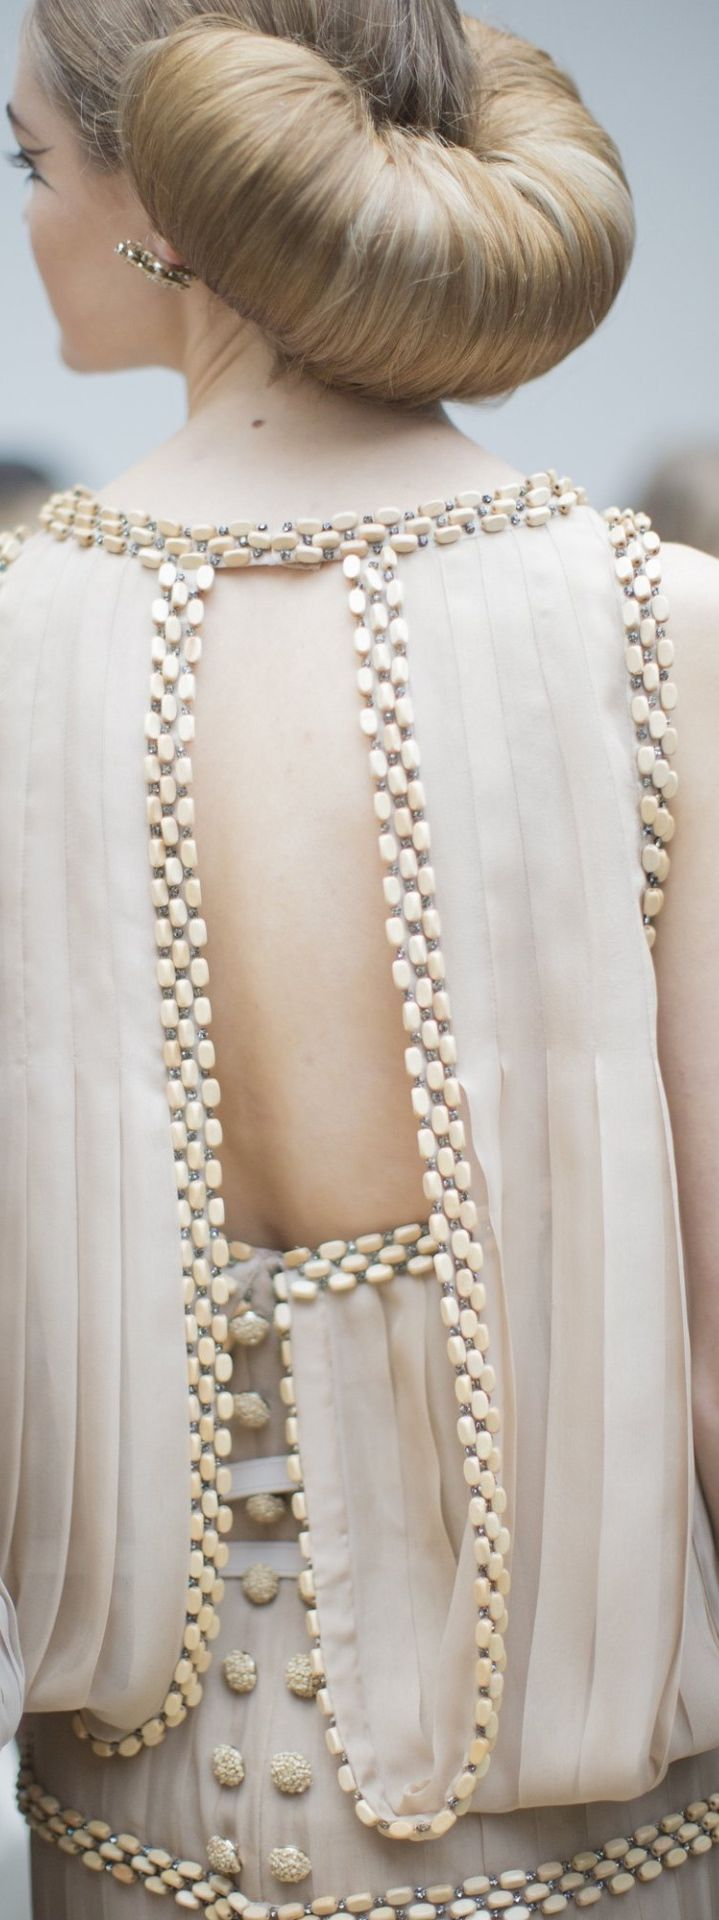 Chanel Spring 2016 .......portofolio is hanging on the hip - hip......get outtahere :))) sundaymorningAHA...Can I puge , please...VENTILATION ! A-ha-ha :)))